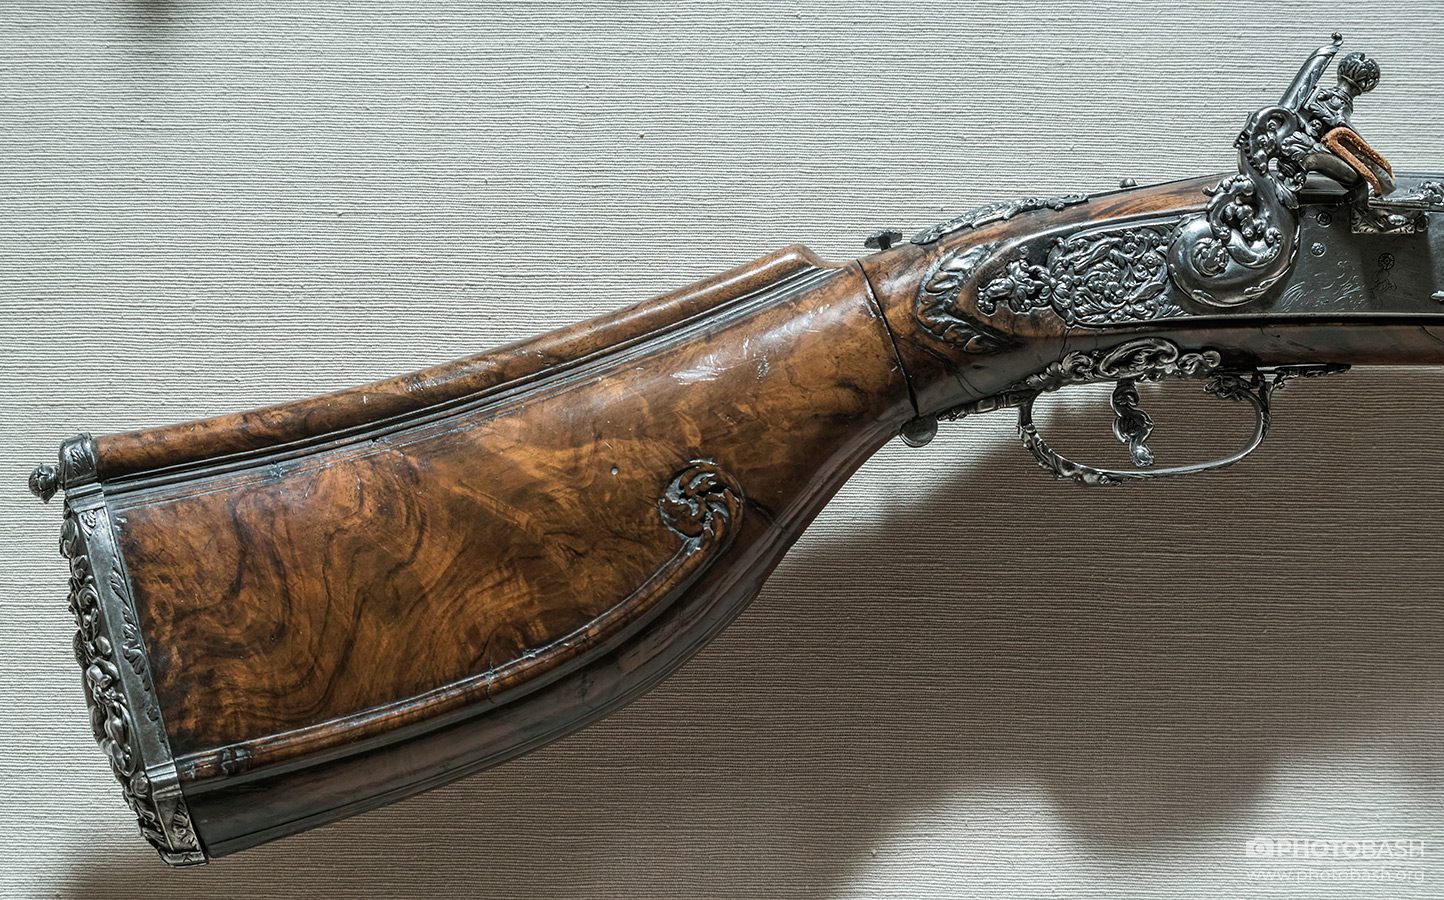 Antique-Firearms-Rifle-Handle.jpg